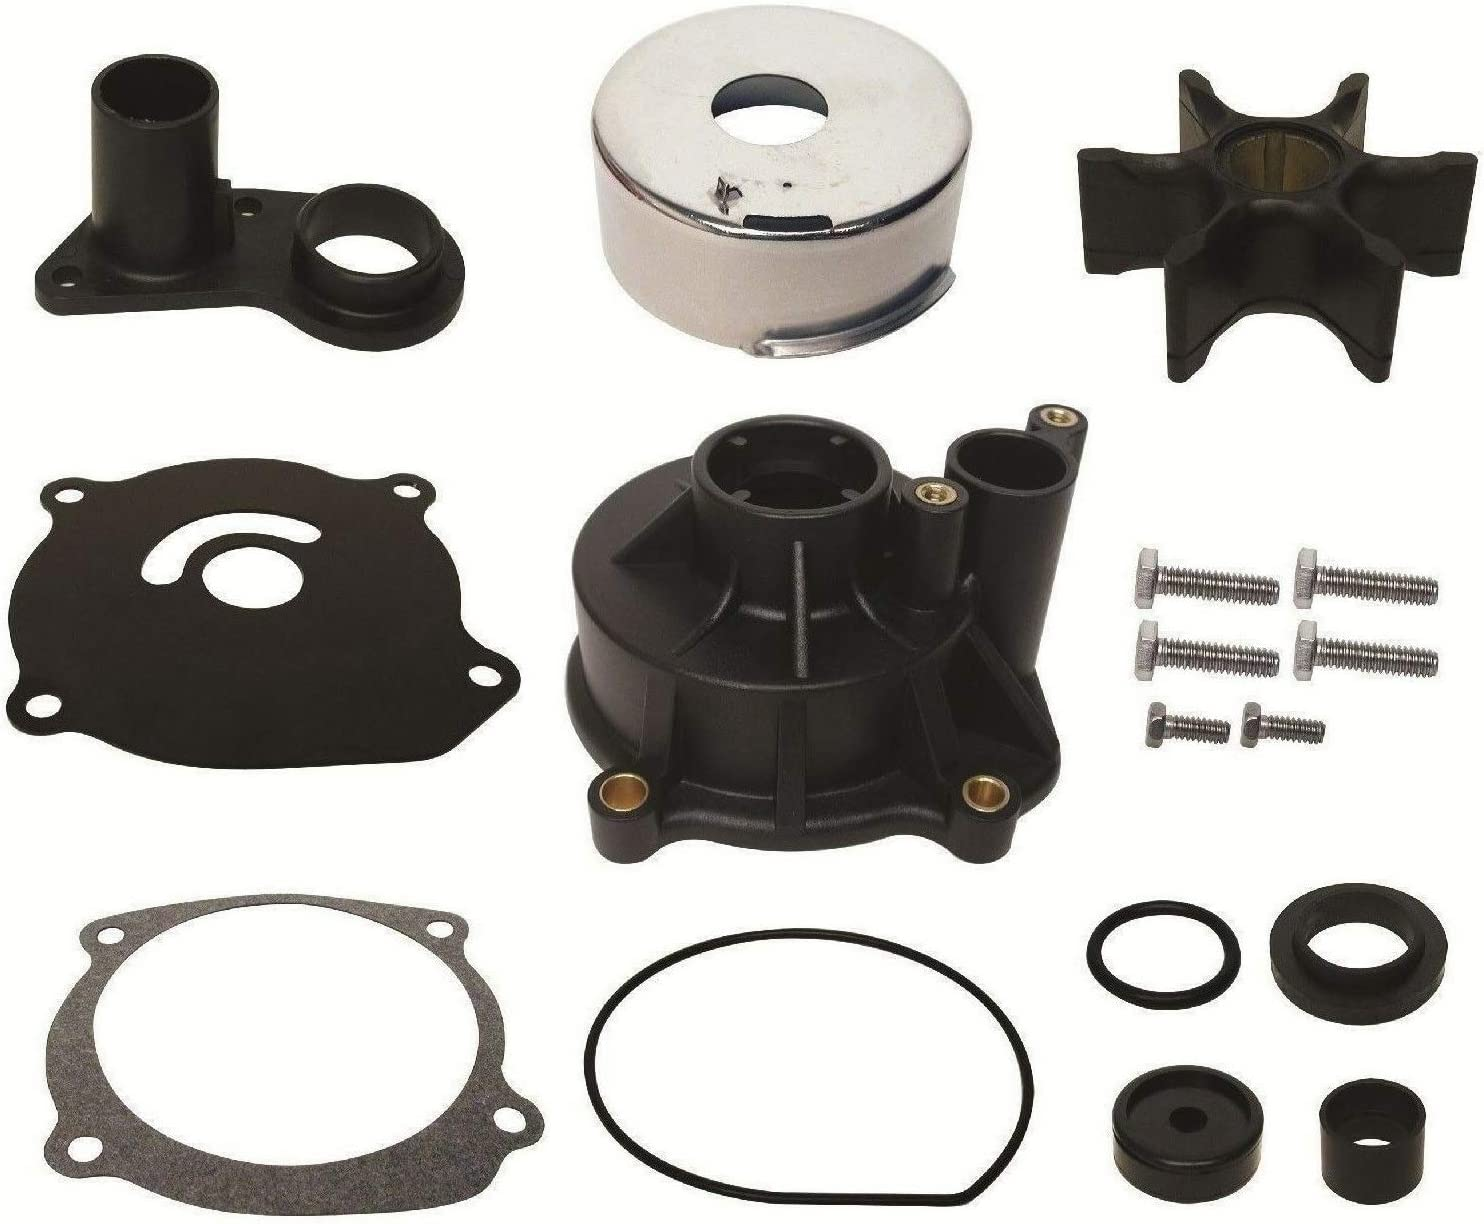 Water Pump Repair Kit with Housing for Johnson Evinrude V4 & V6 85 115 140 150 175 200 235 Hp 1978 & Earlier W Straight Key Impellers Replaces 18-3393 395073 Read Product Description for Applications